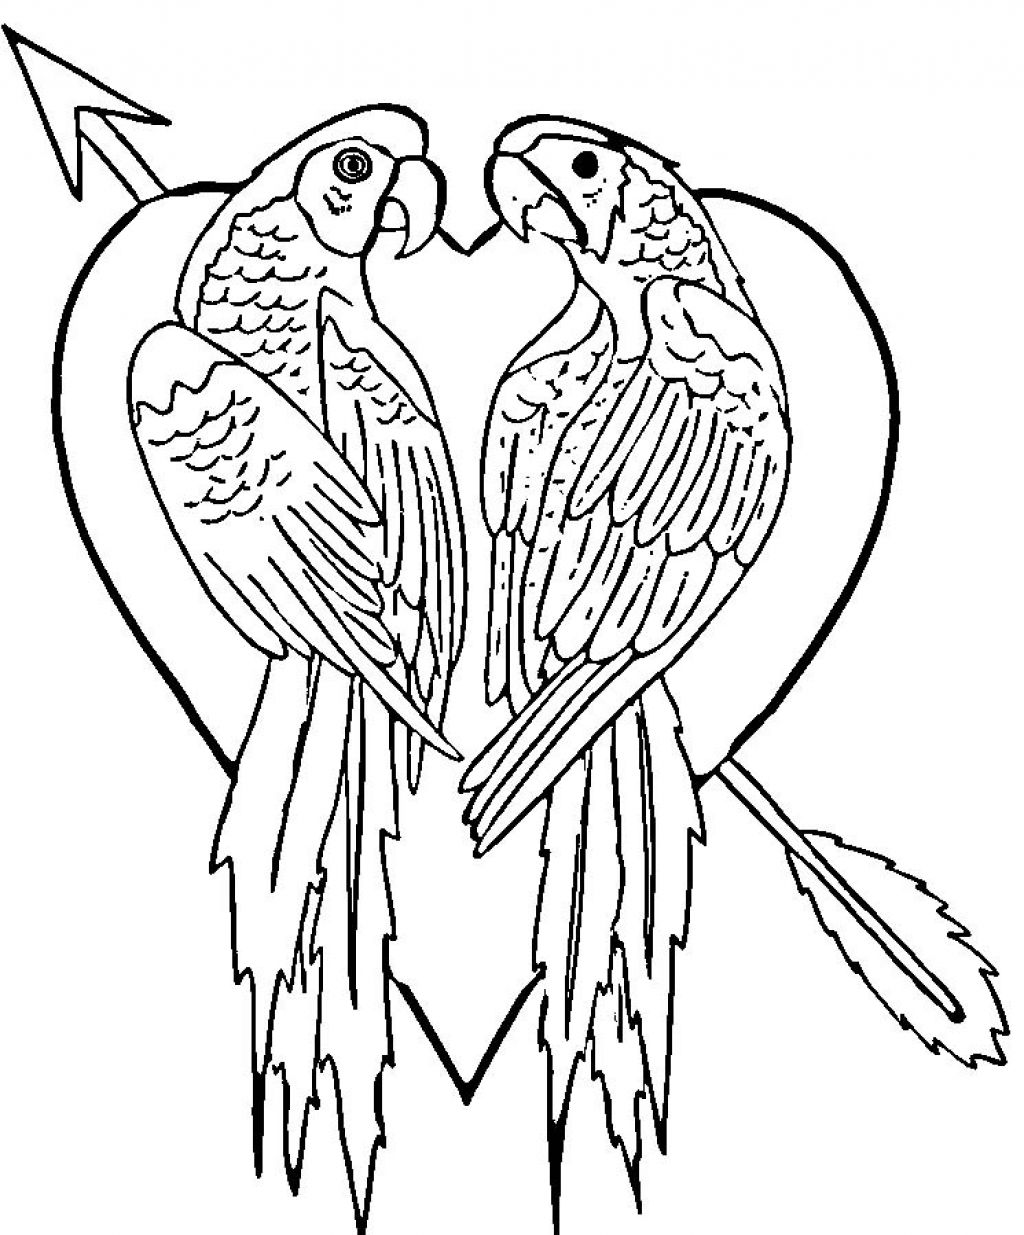 parrot outline parrot drawing outline at getdrawings free download parrot outline